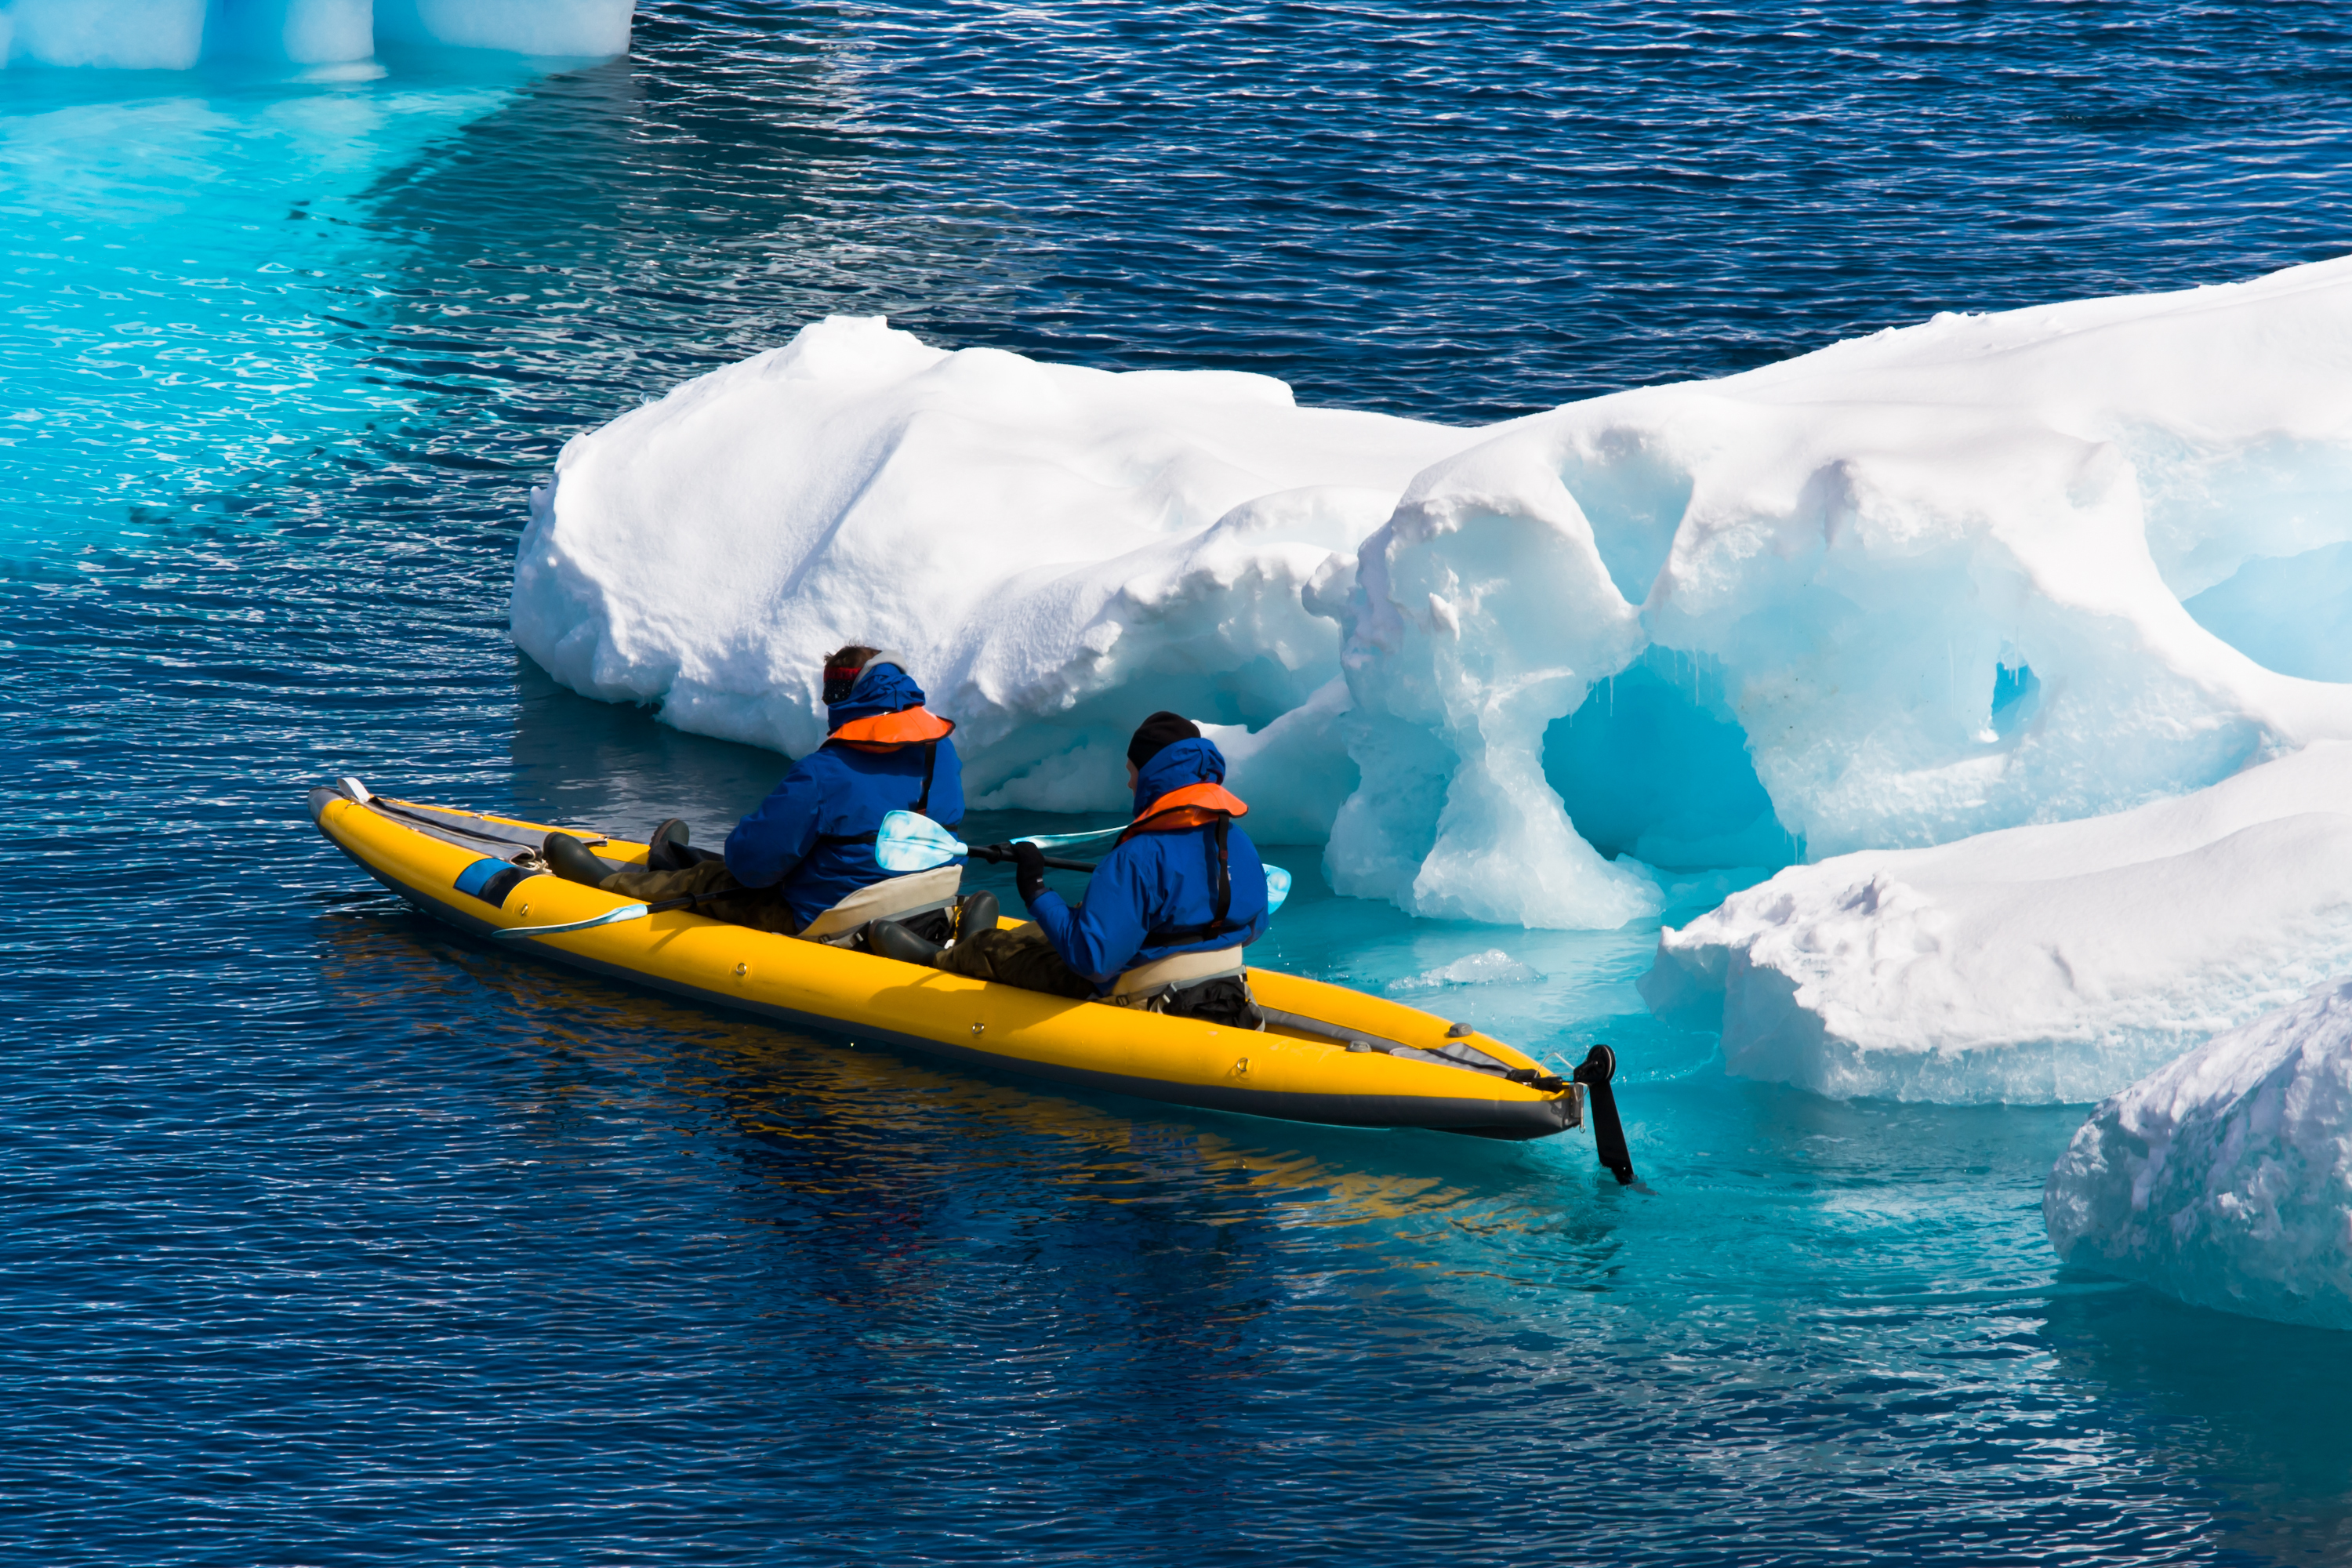 Kayaking in Antarctica is an incredible experience and a great way to get a close-up view of the exceptional marine wildlife